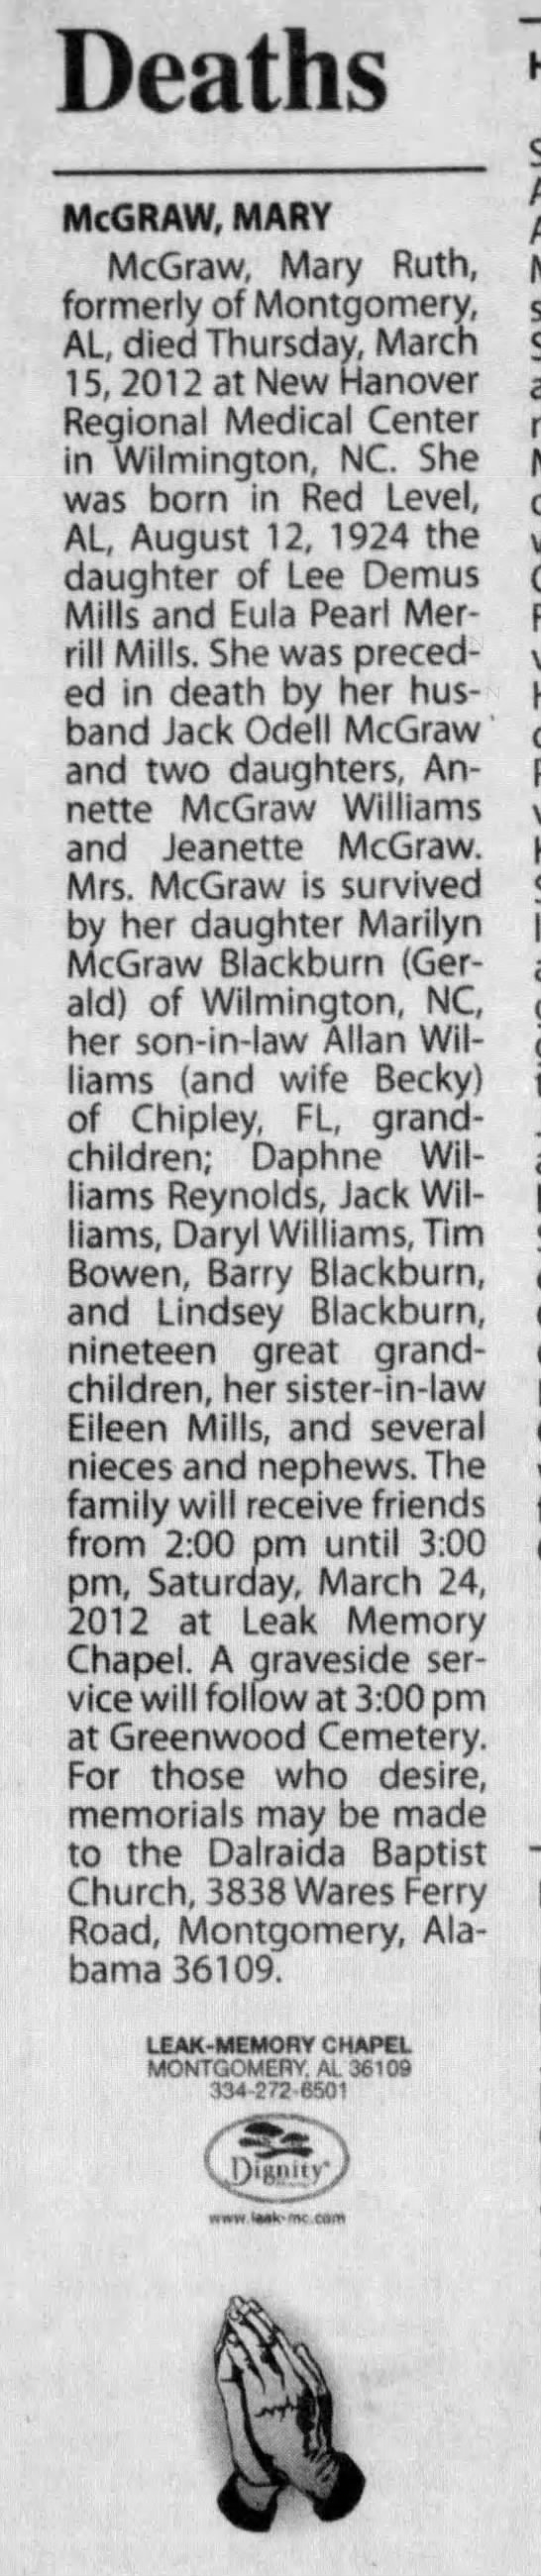 Mary Ruth Mills McGraw obituary - Deaths McGRAW, MARY McGraw, Mary Ruth, formerly...